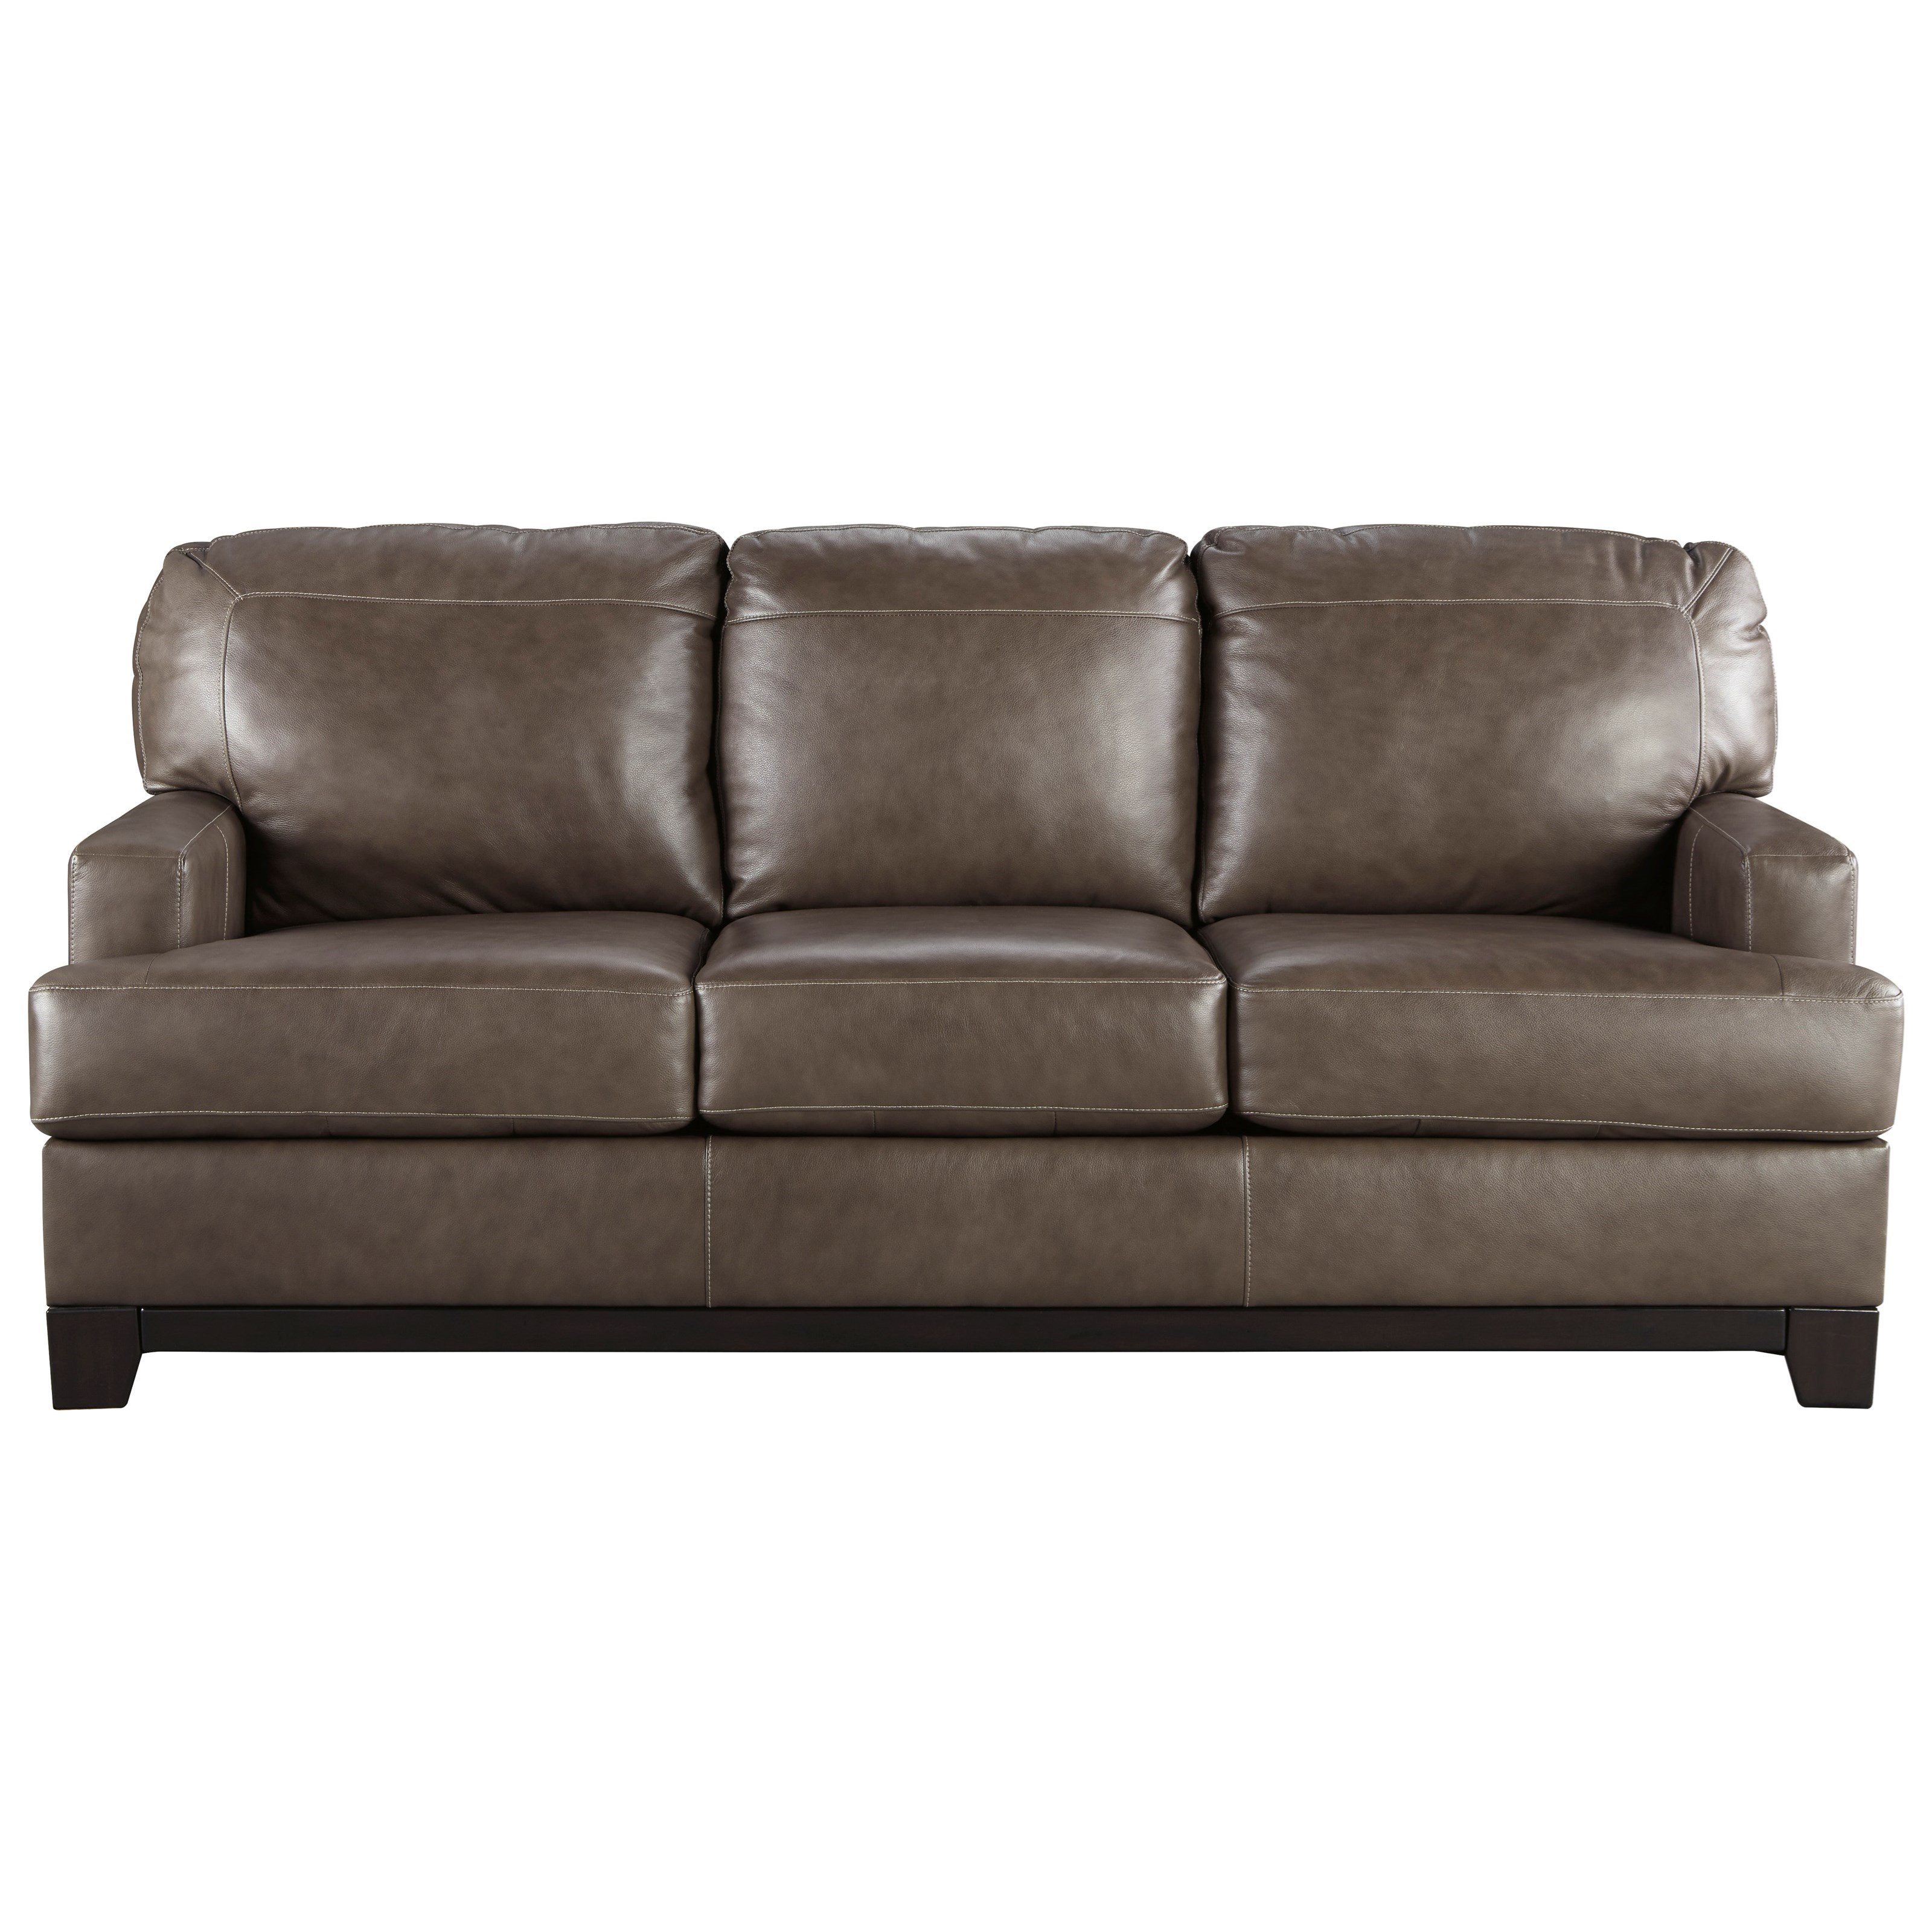 Contemporary Leather Match Sofa By Signature Design By Ashley Wolf And Gardiner Wolf Furniture